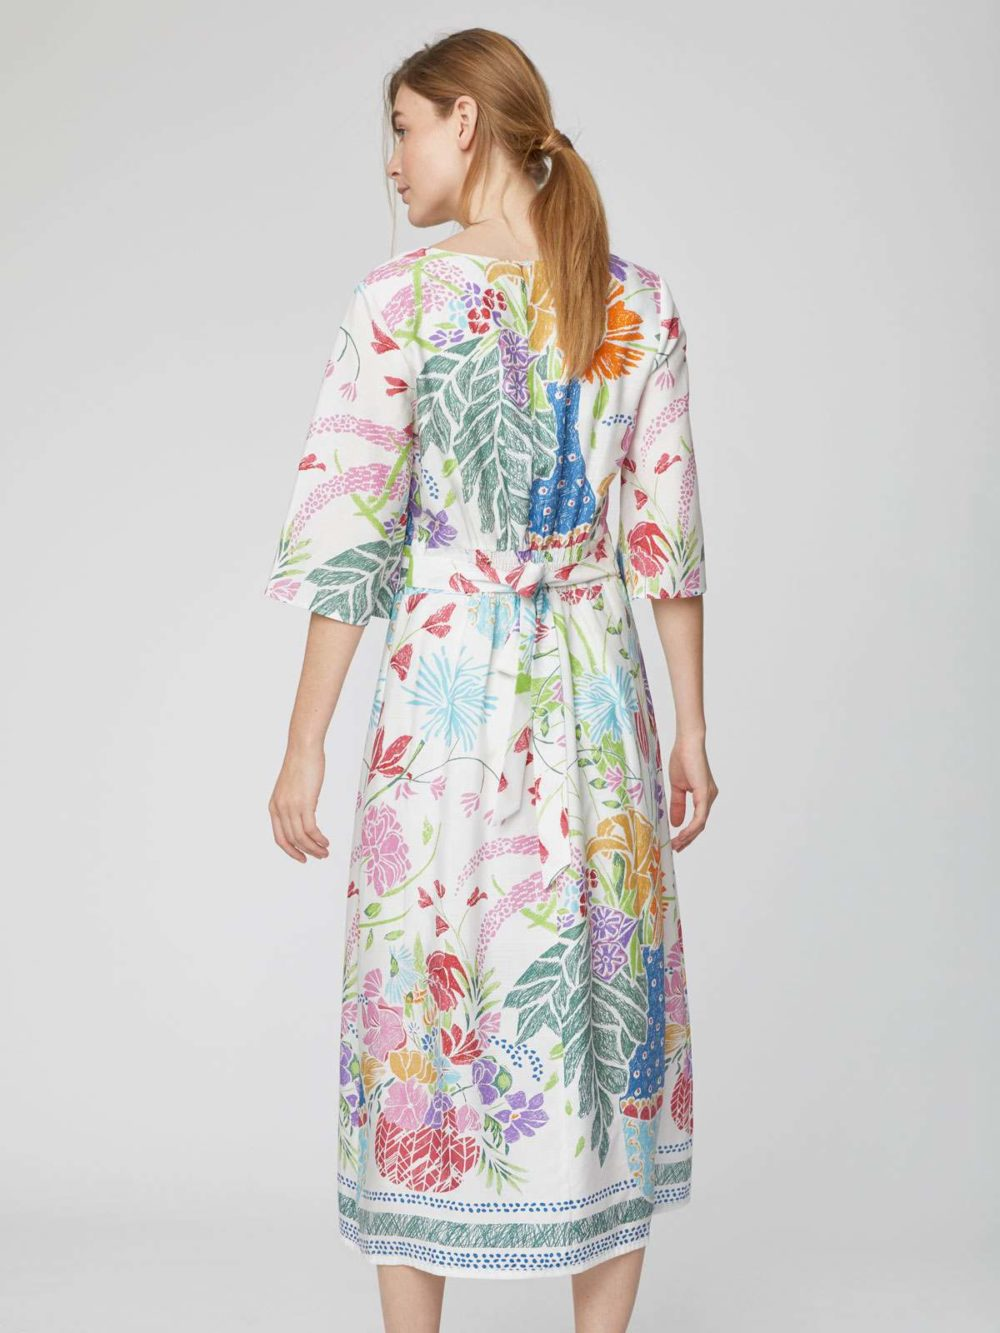 Vases Dress Thought Clothing Katie Kerr Women's Clothing